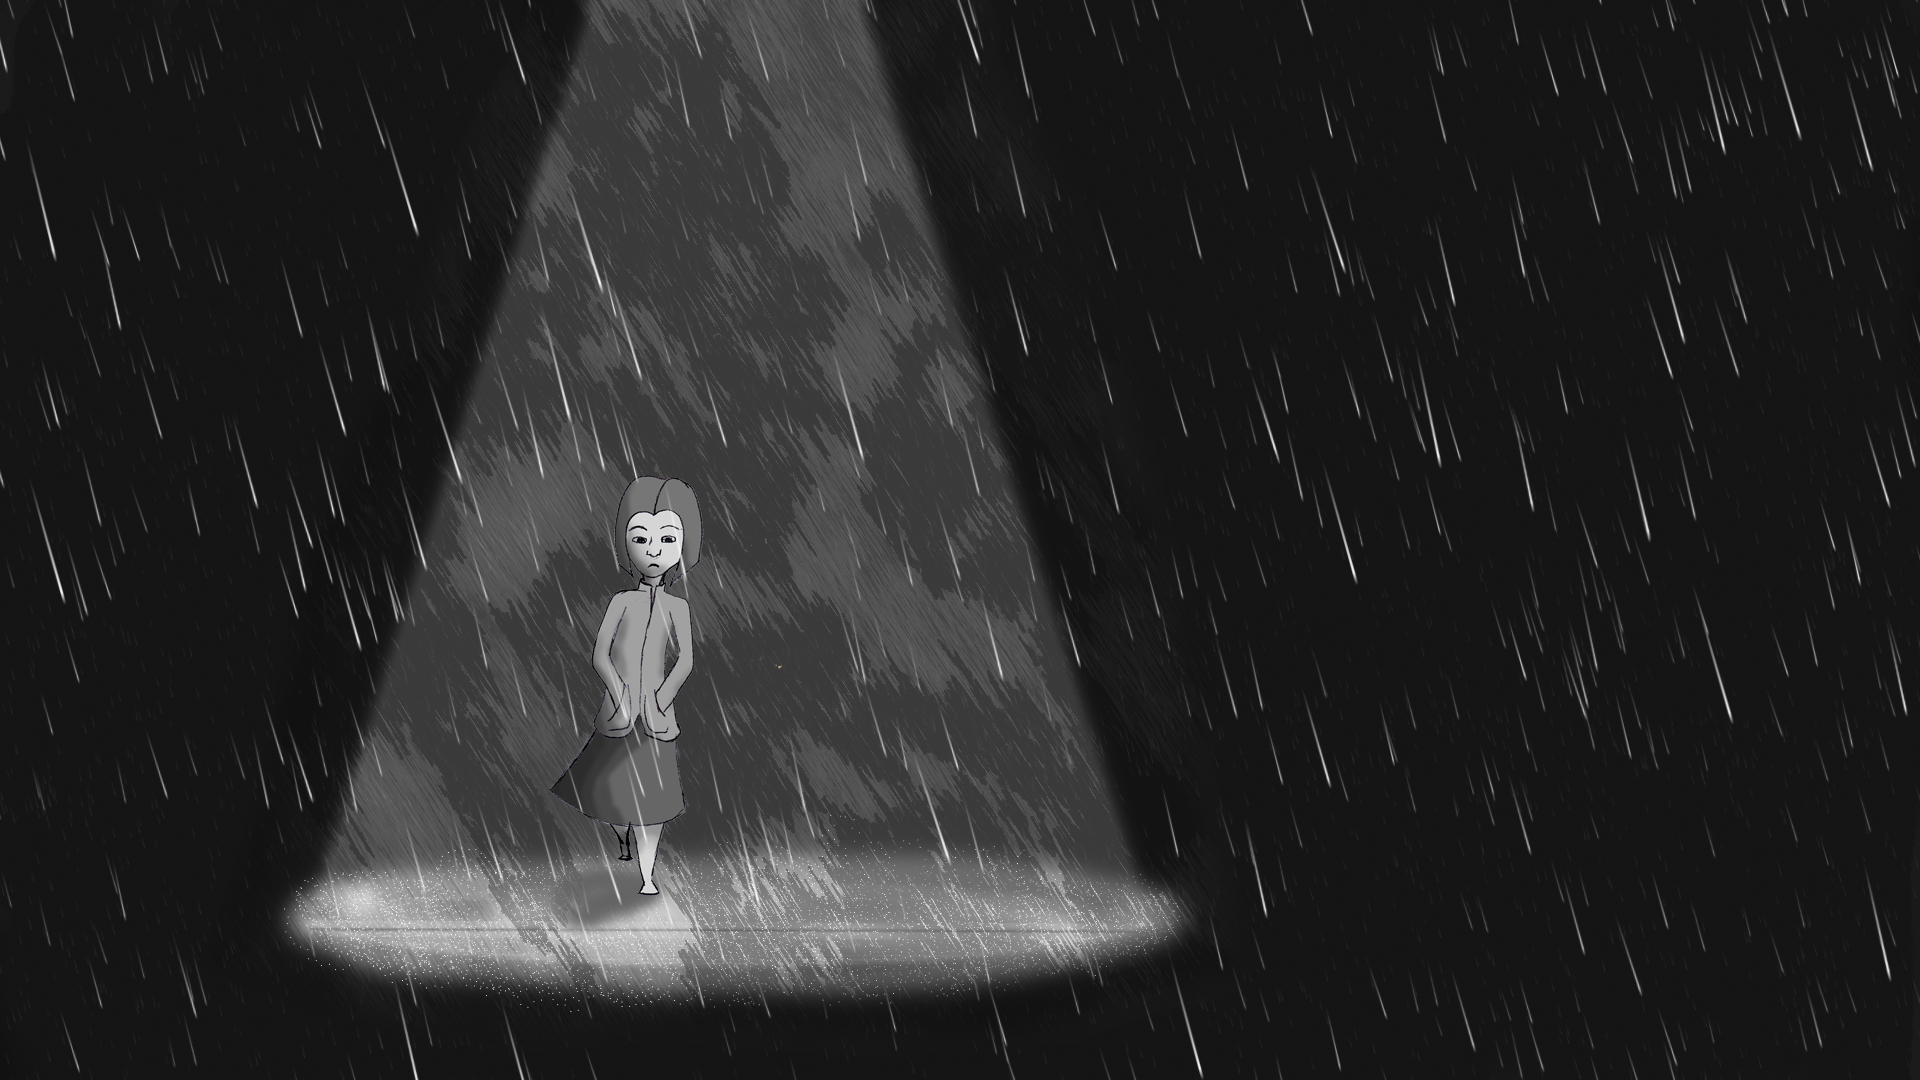 In the Rain - image 2 - student project